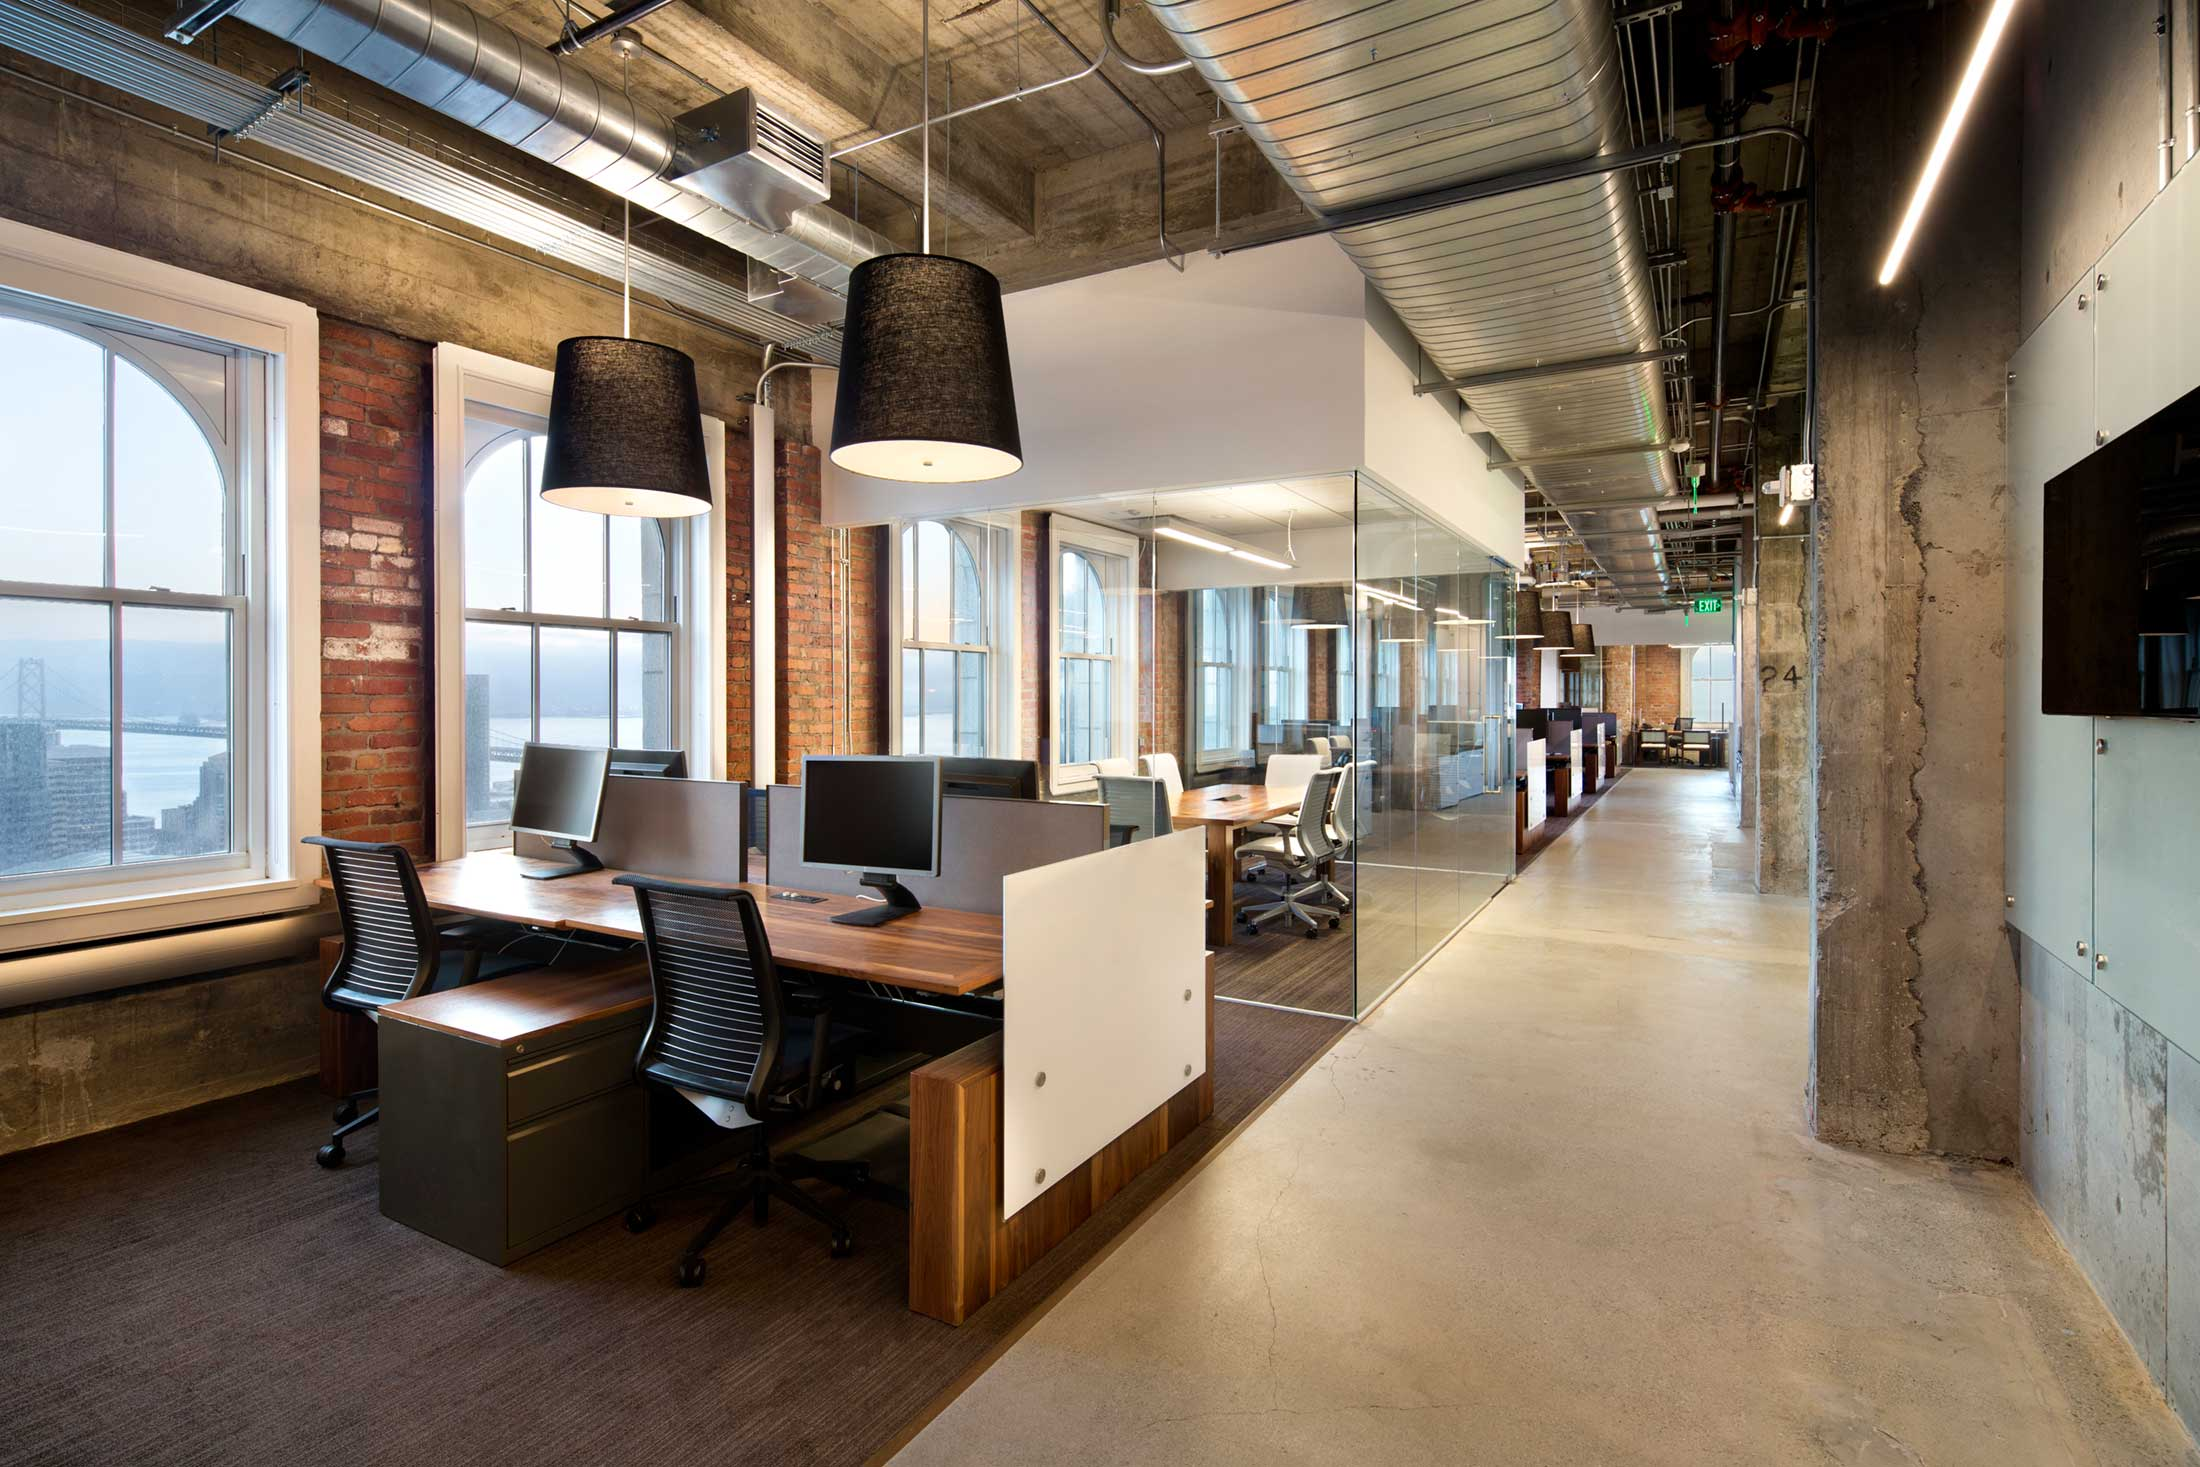 modern-architecture-commercial-interiors-office-california-shubindonaldson-truecar-san-francisco-06